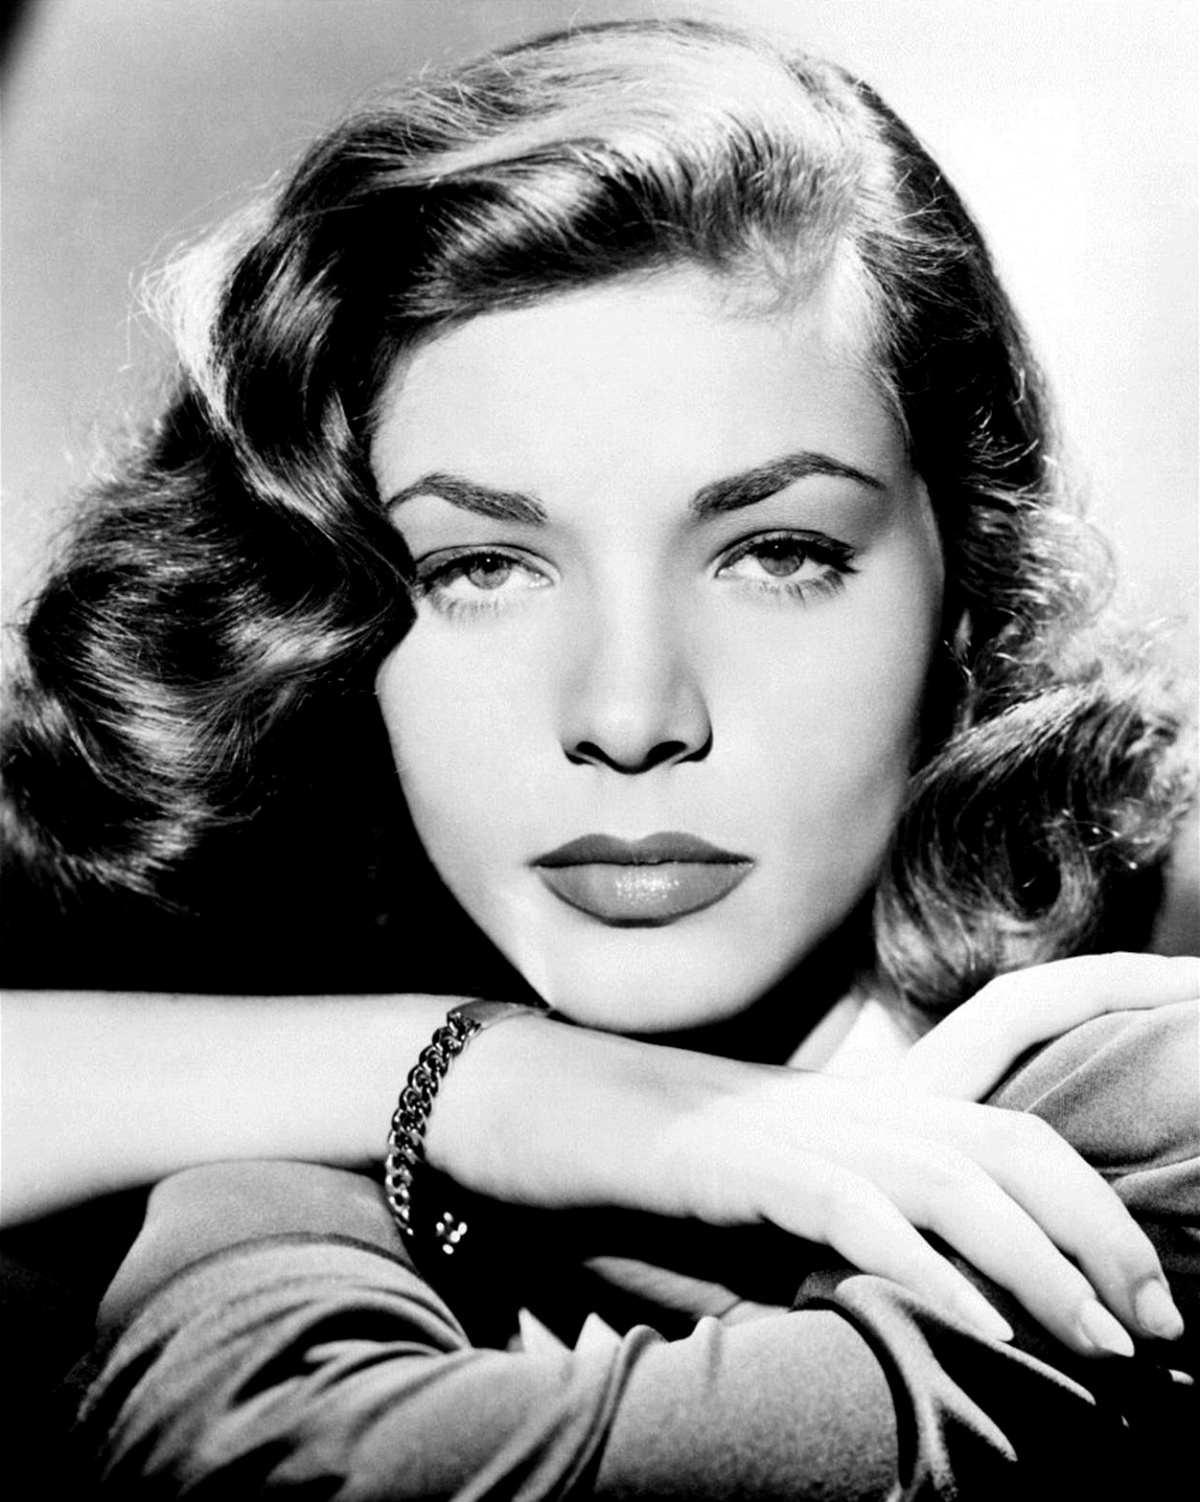 Last of the Golden Age Icons: Remembering LaurenBacall